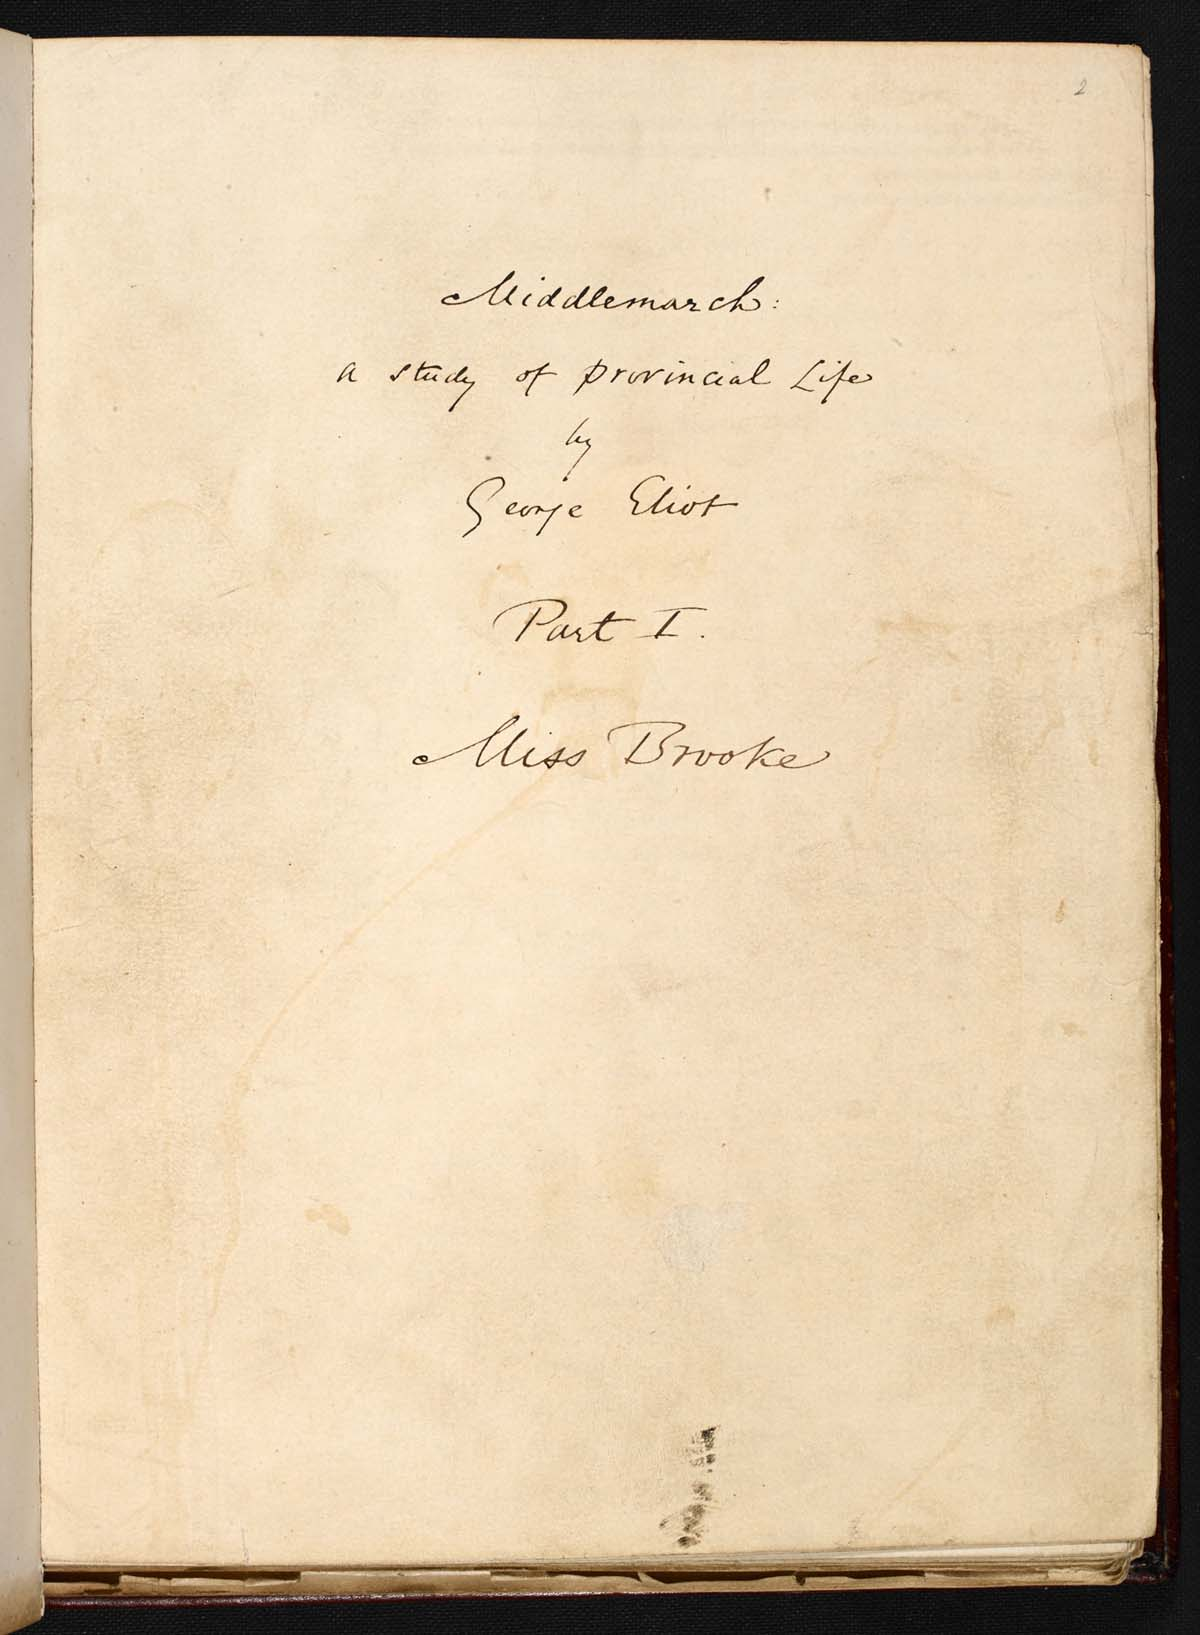 a page with a handwritten title